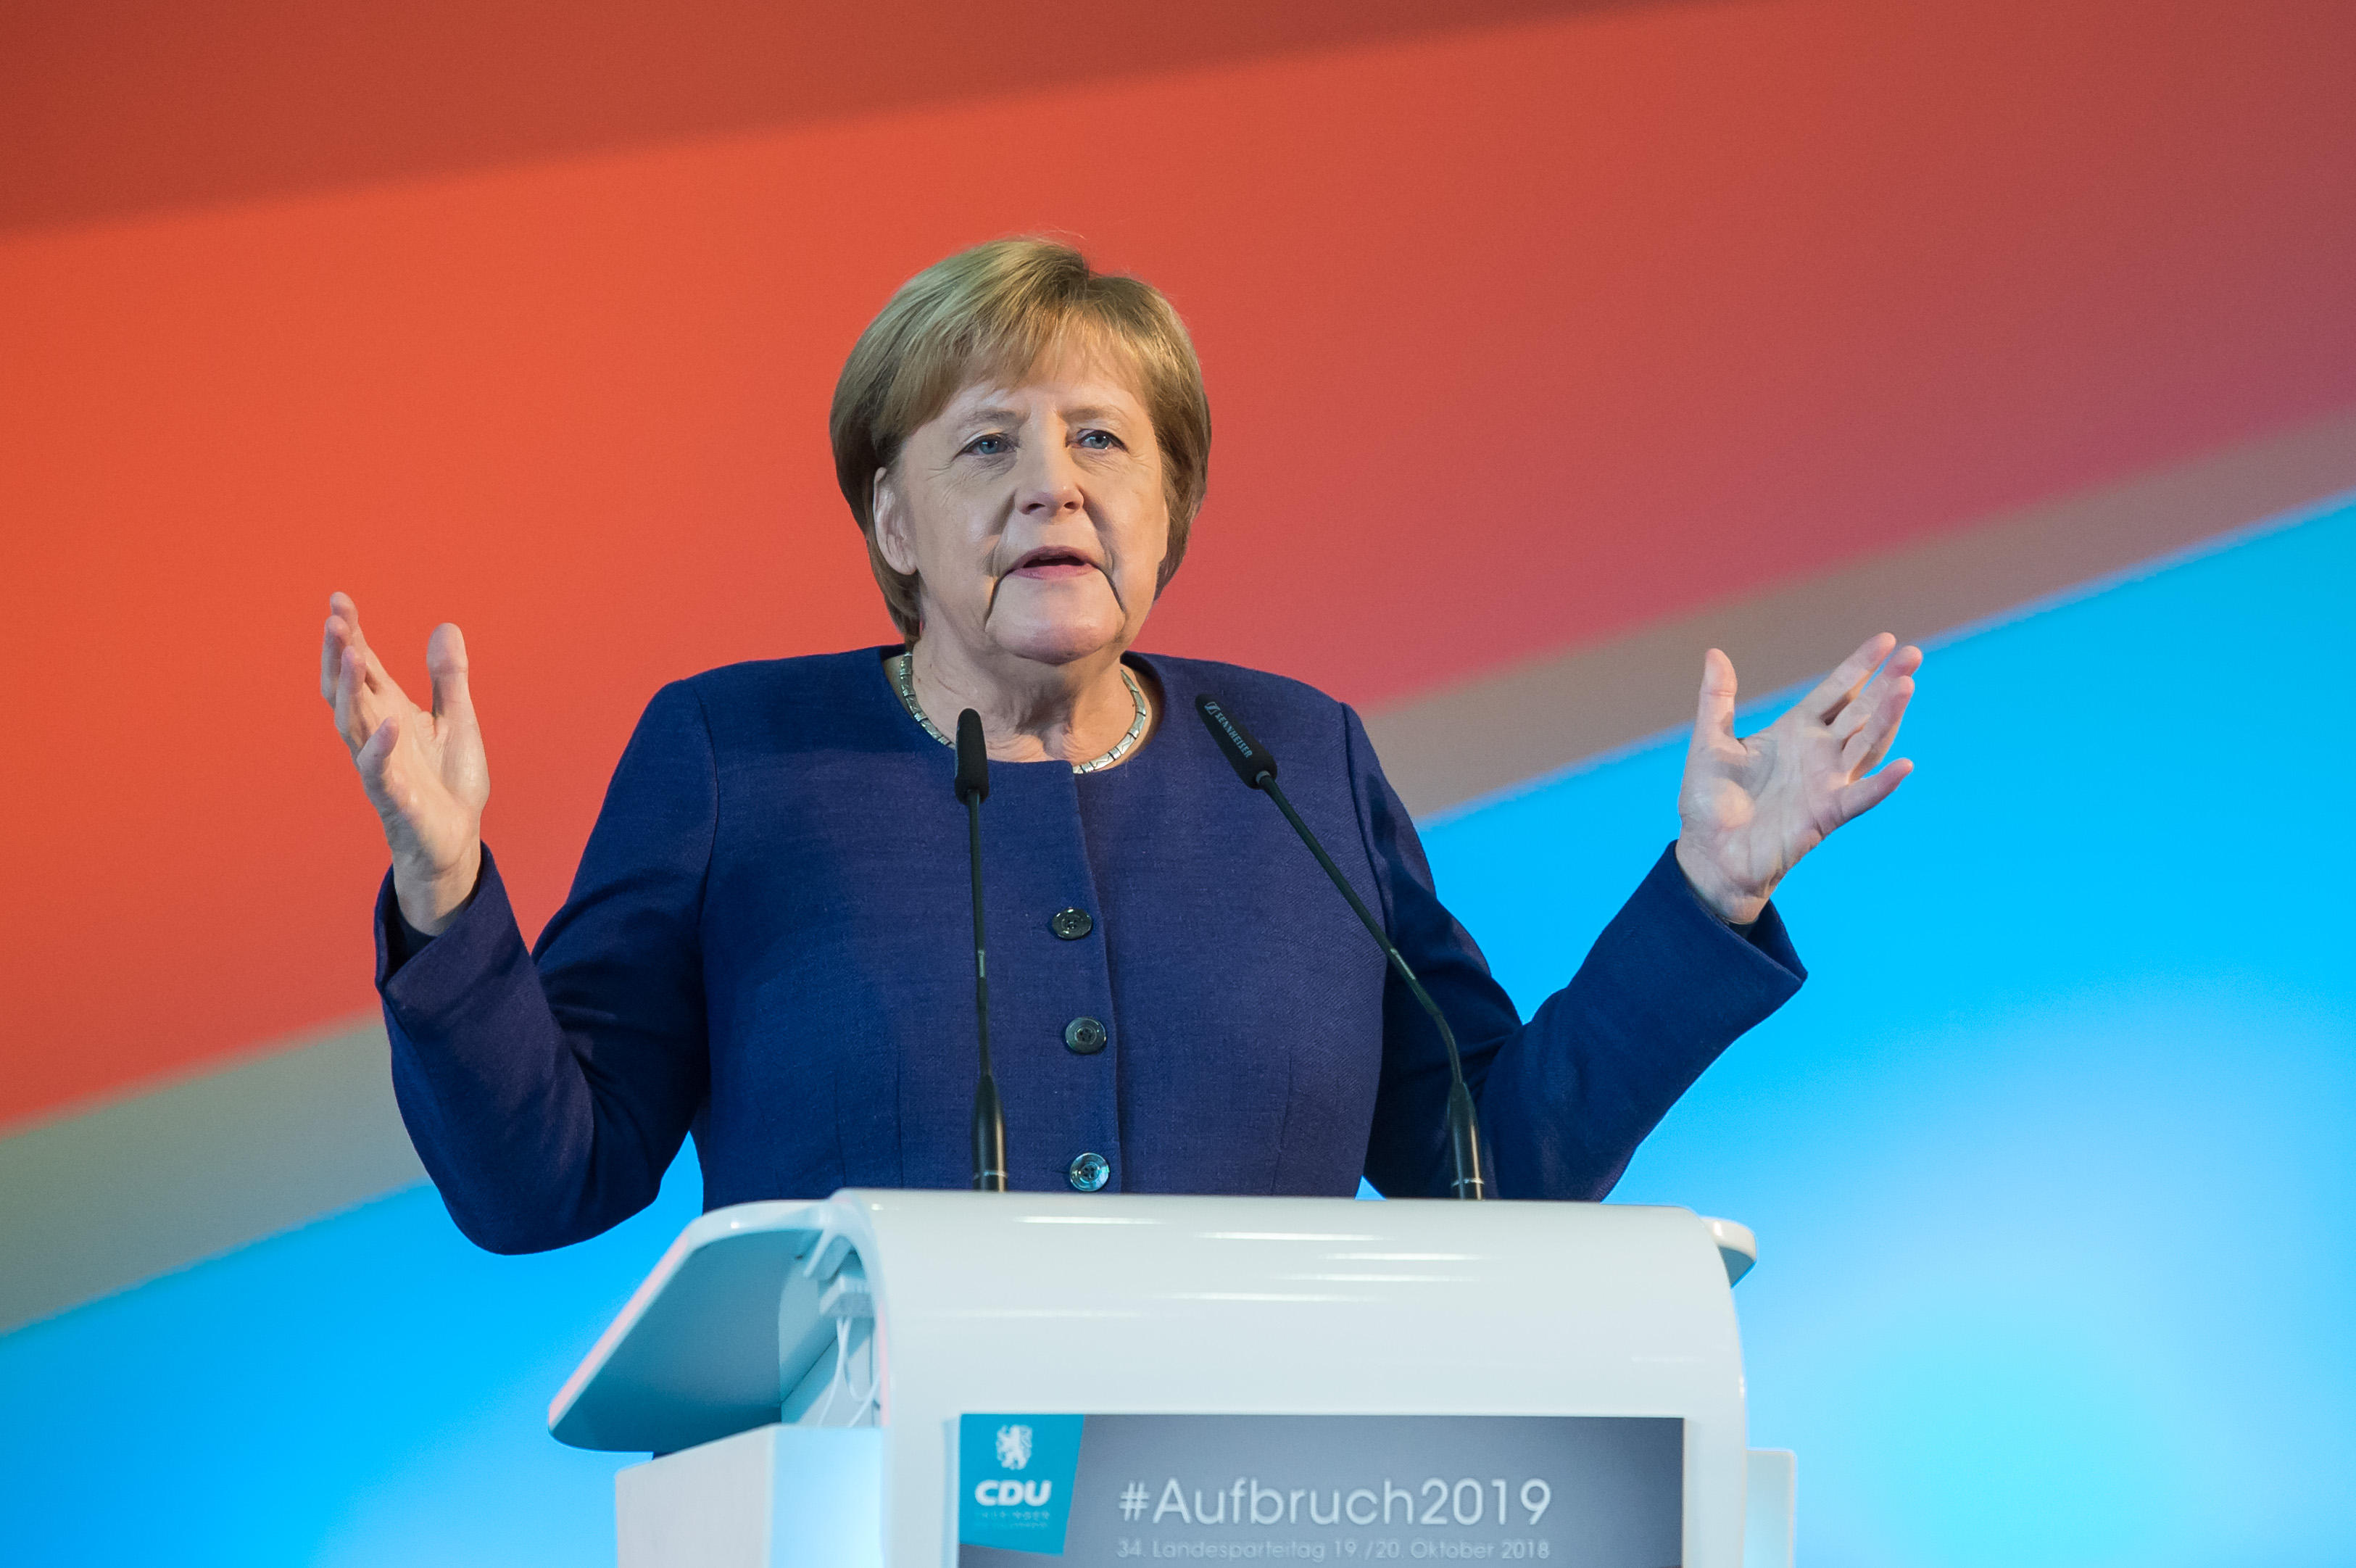 Angela Merkel, Chancellor and Federal Chairman of the CDU, speaking at the state party conference of the CDU Thuringia in the Obereichsfeldhalle. She called for Saudi Arabia to reveal the truth about journalist, Jamal Khashoggi's death.